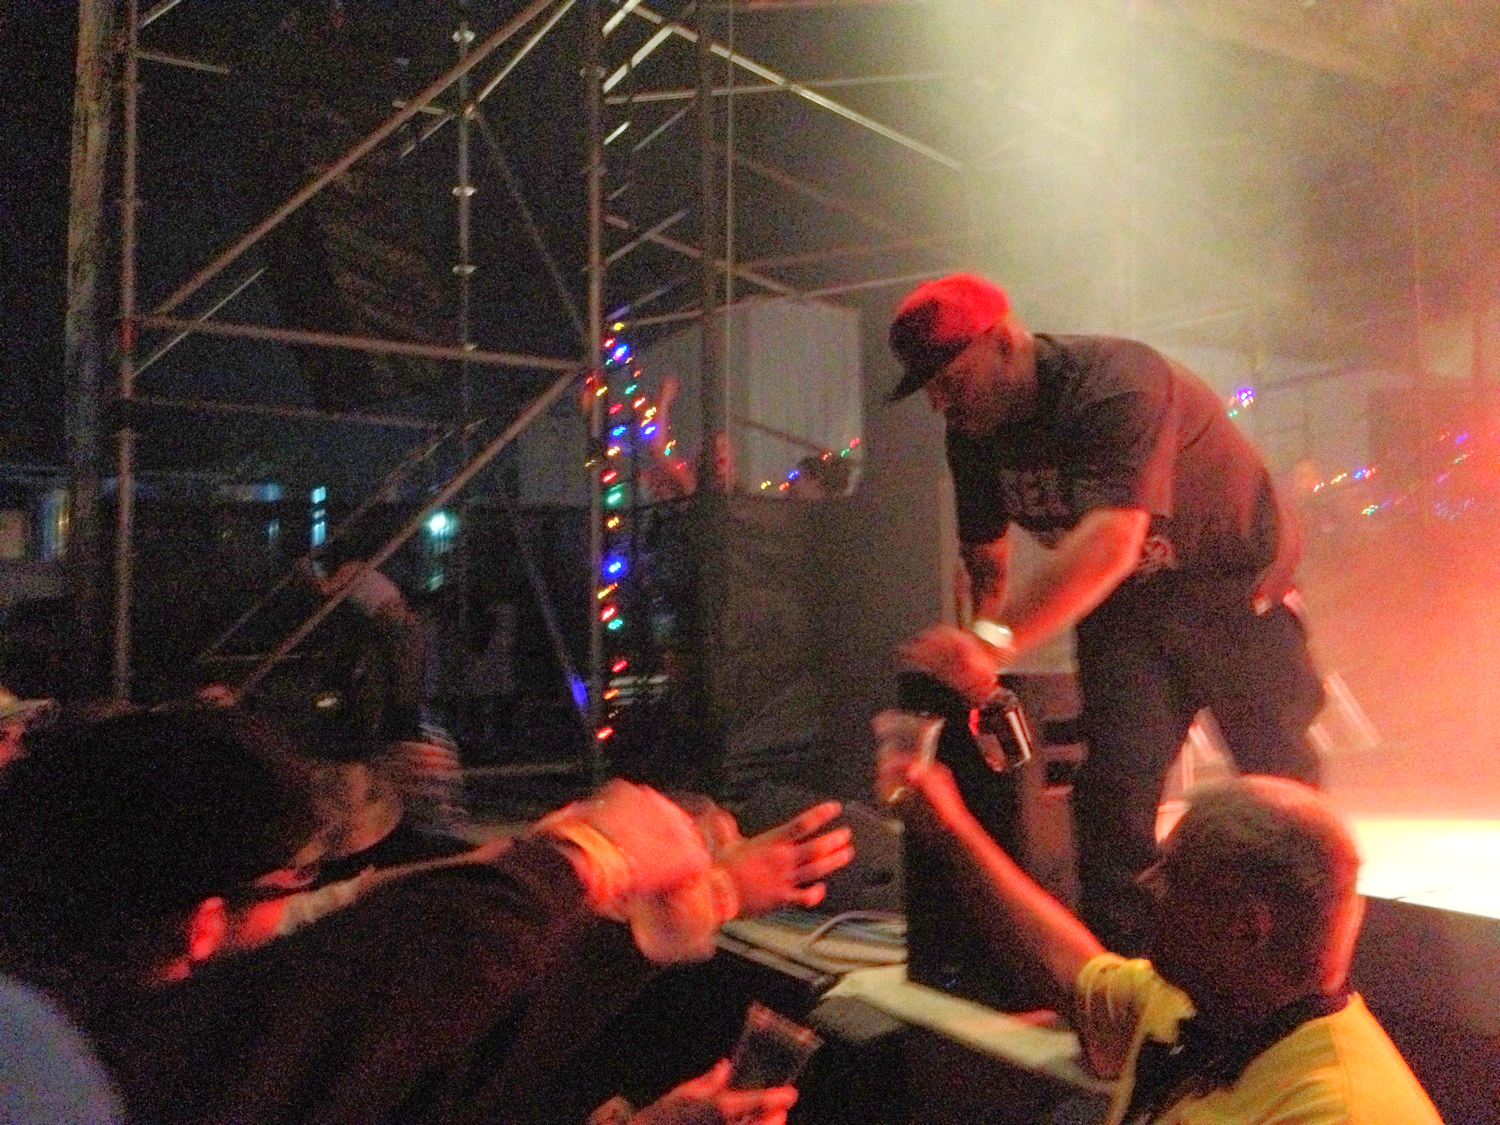 The security guard actually assisted Psycho Les in sharing his Hennessy with the front row.